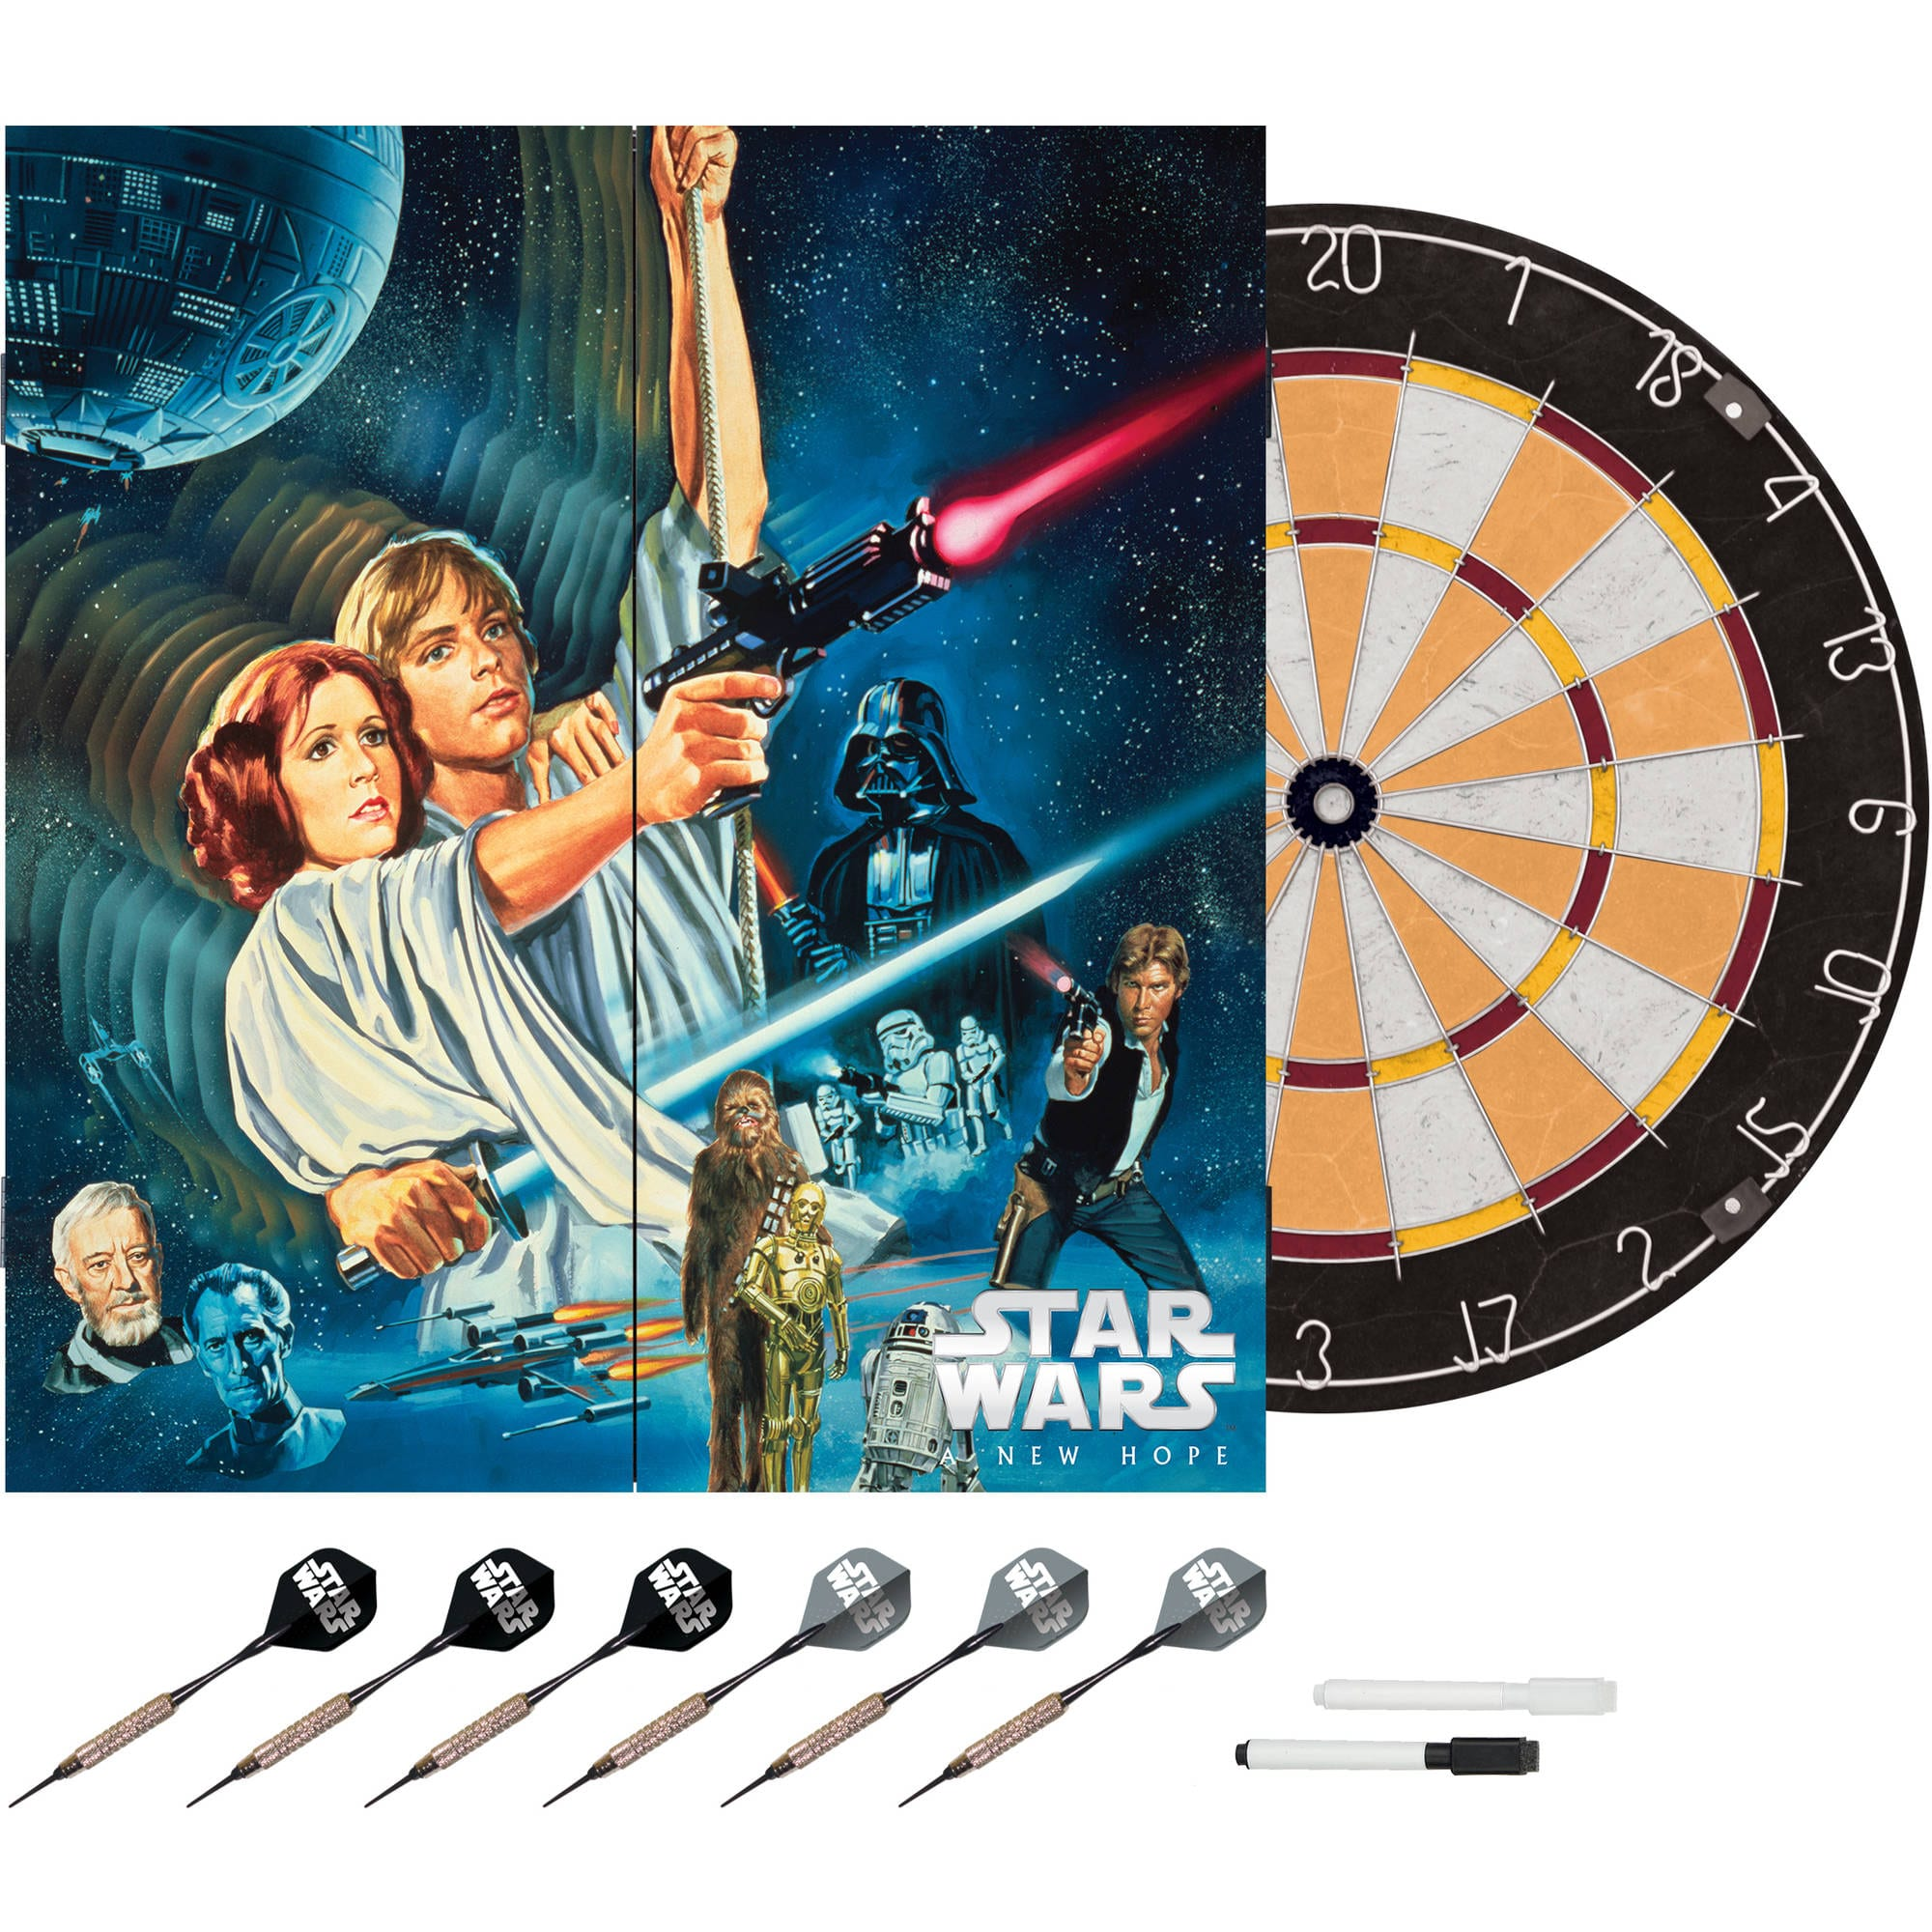 Star Wars Bristle Dartboard with Cabinet & Darts $21.97 @walmart.com